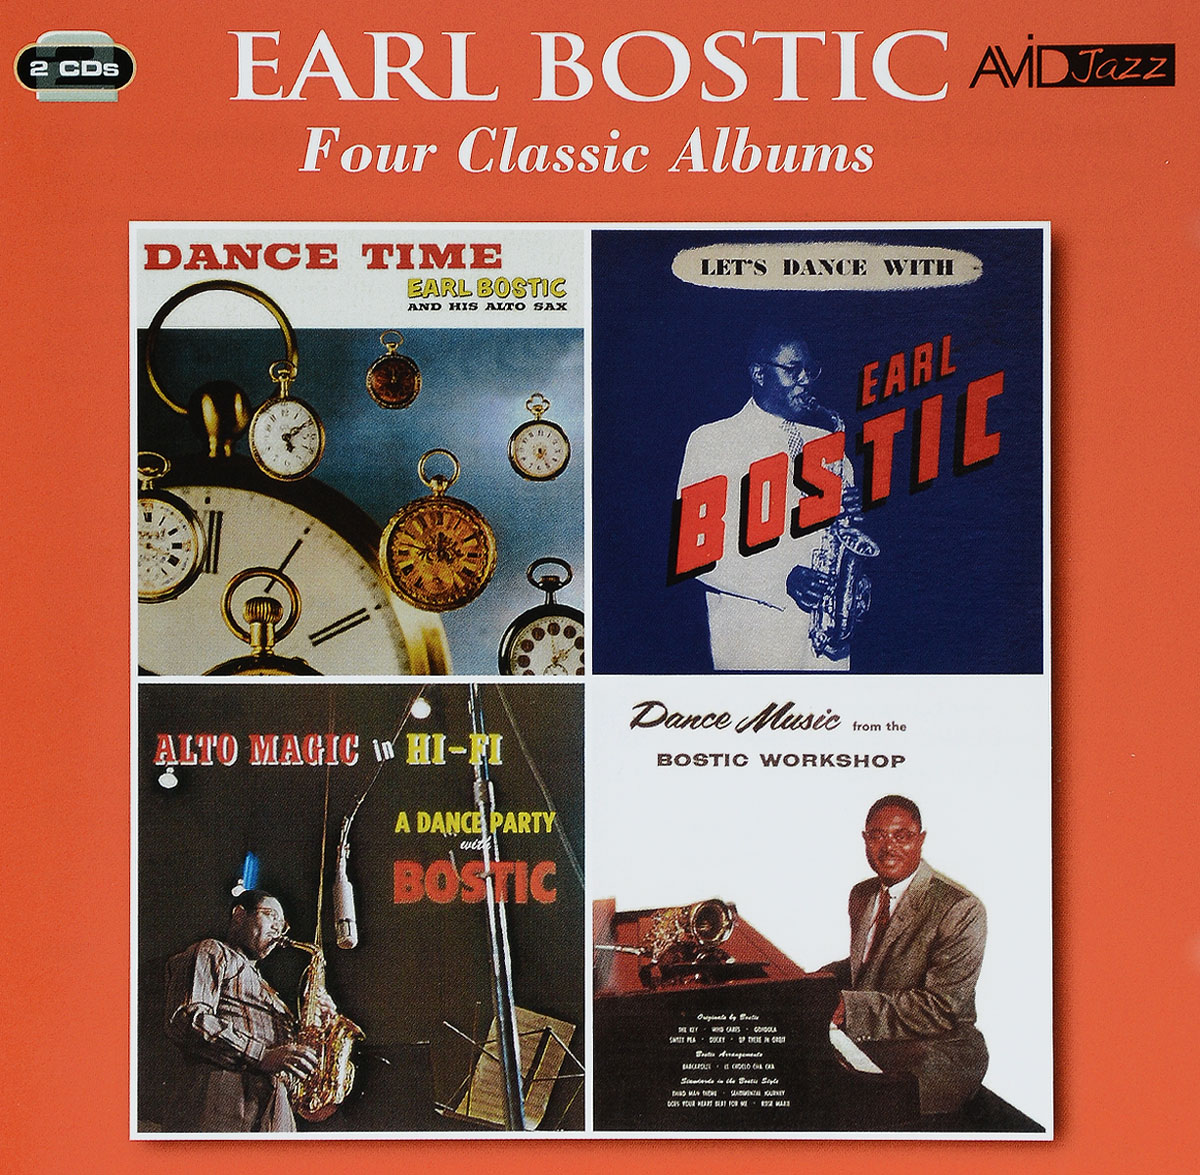 Эрл Бостик Avid Jazz. Earl Bostic. Four Classic Albums (2 CD) avid dolby surround tools